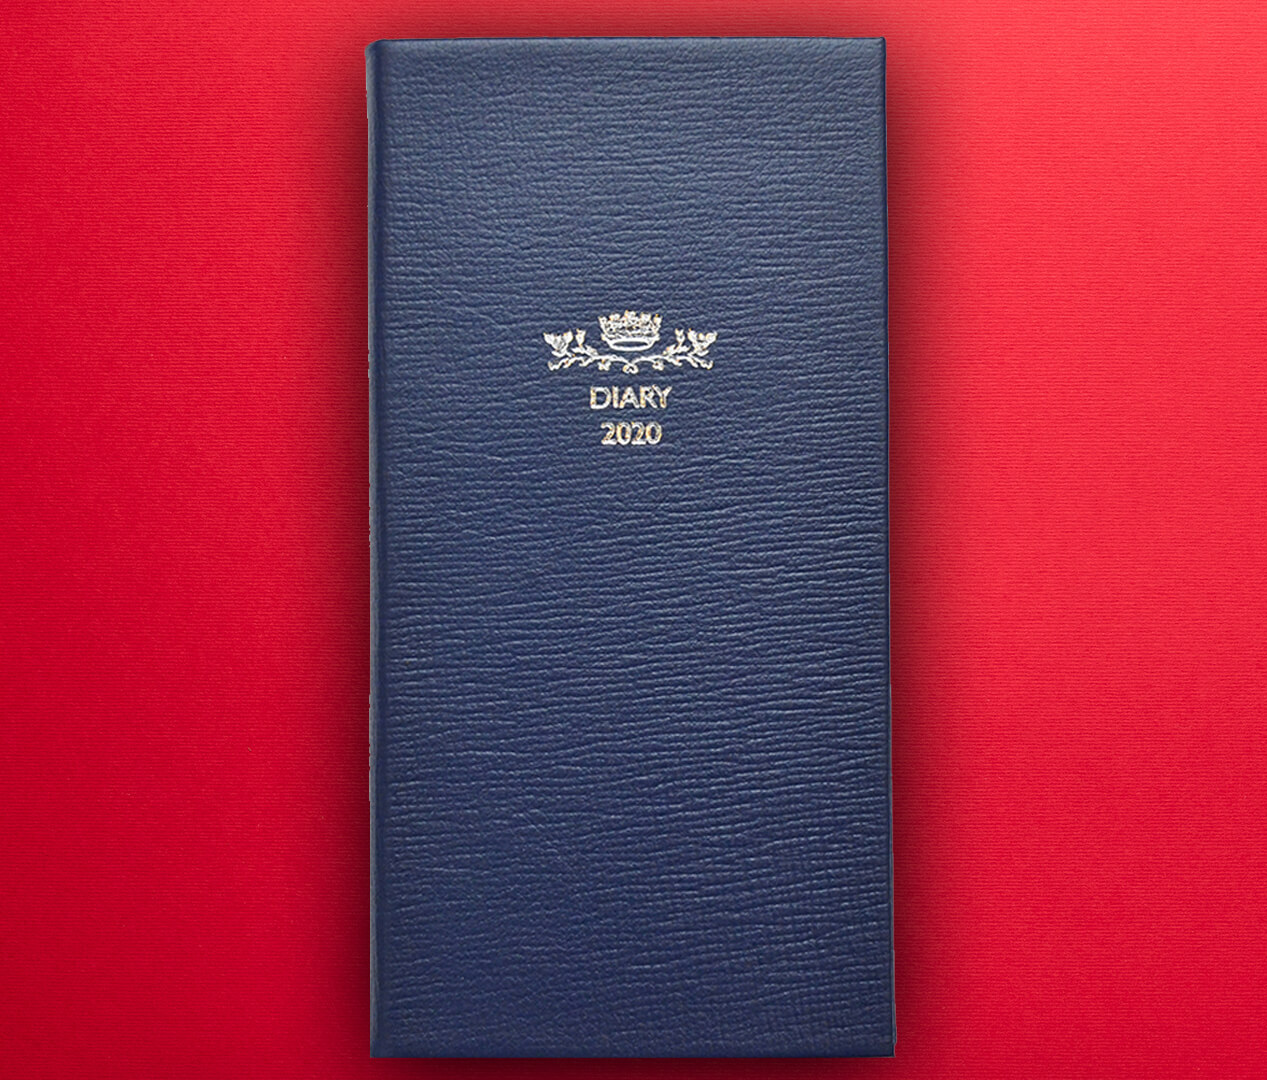 Debrett's slimline leatherbound diaries